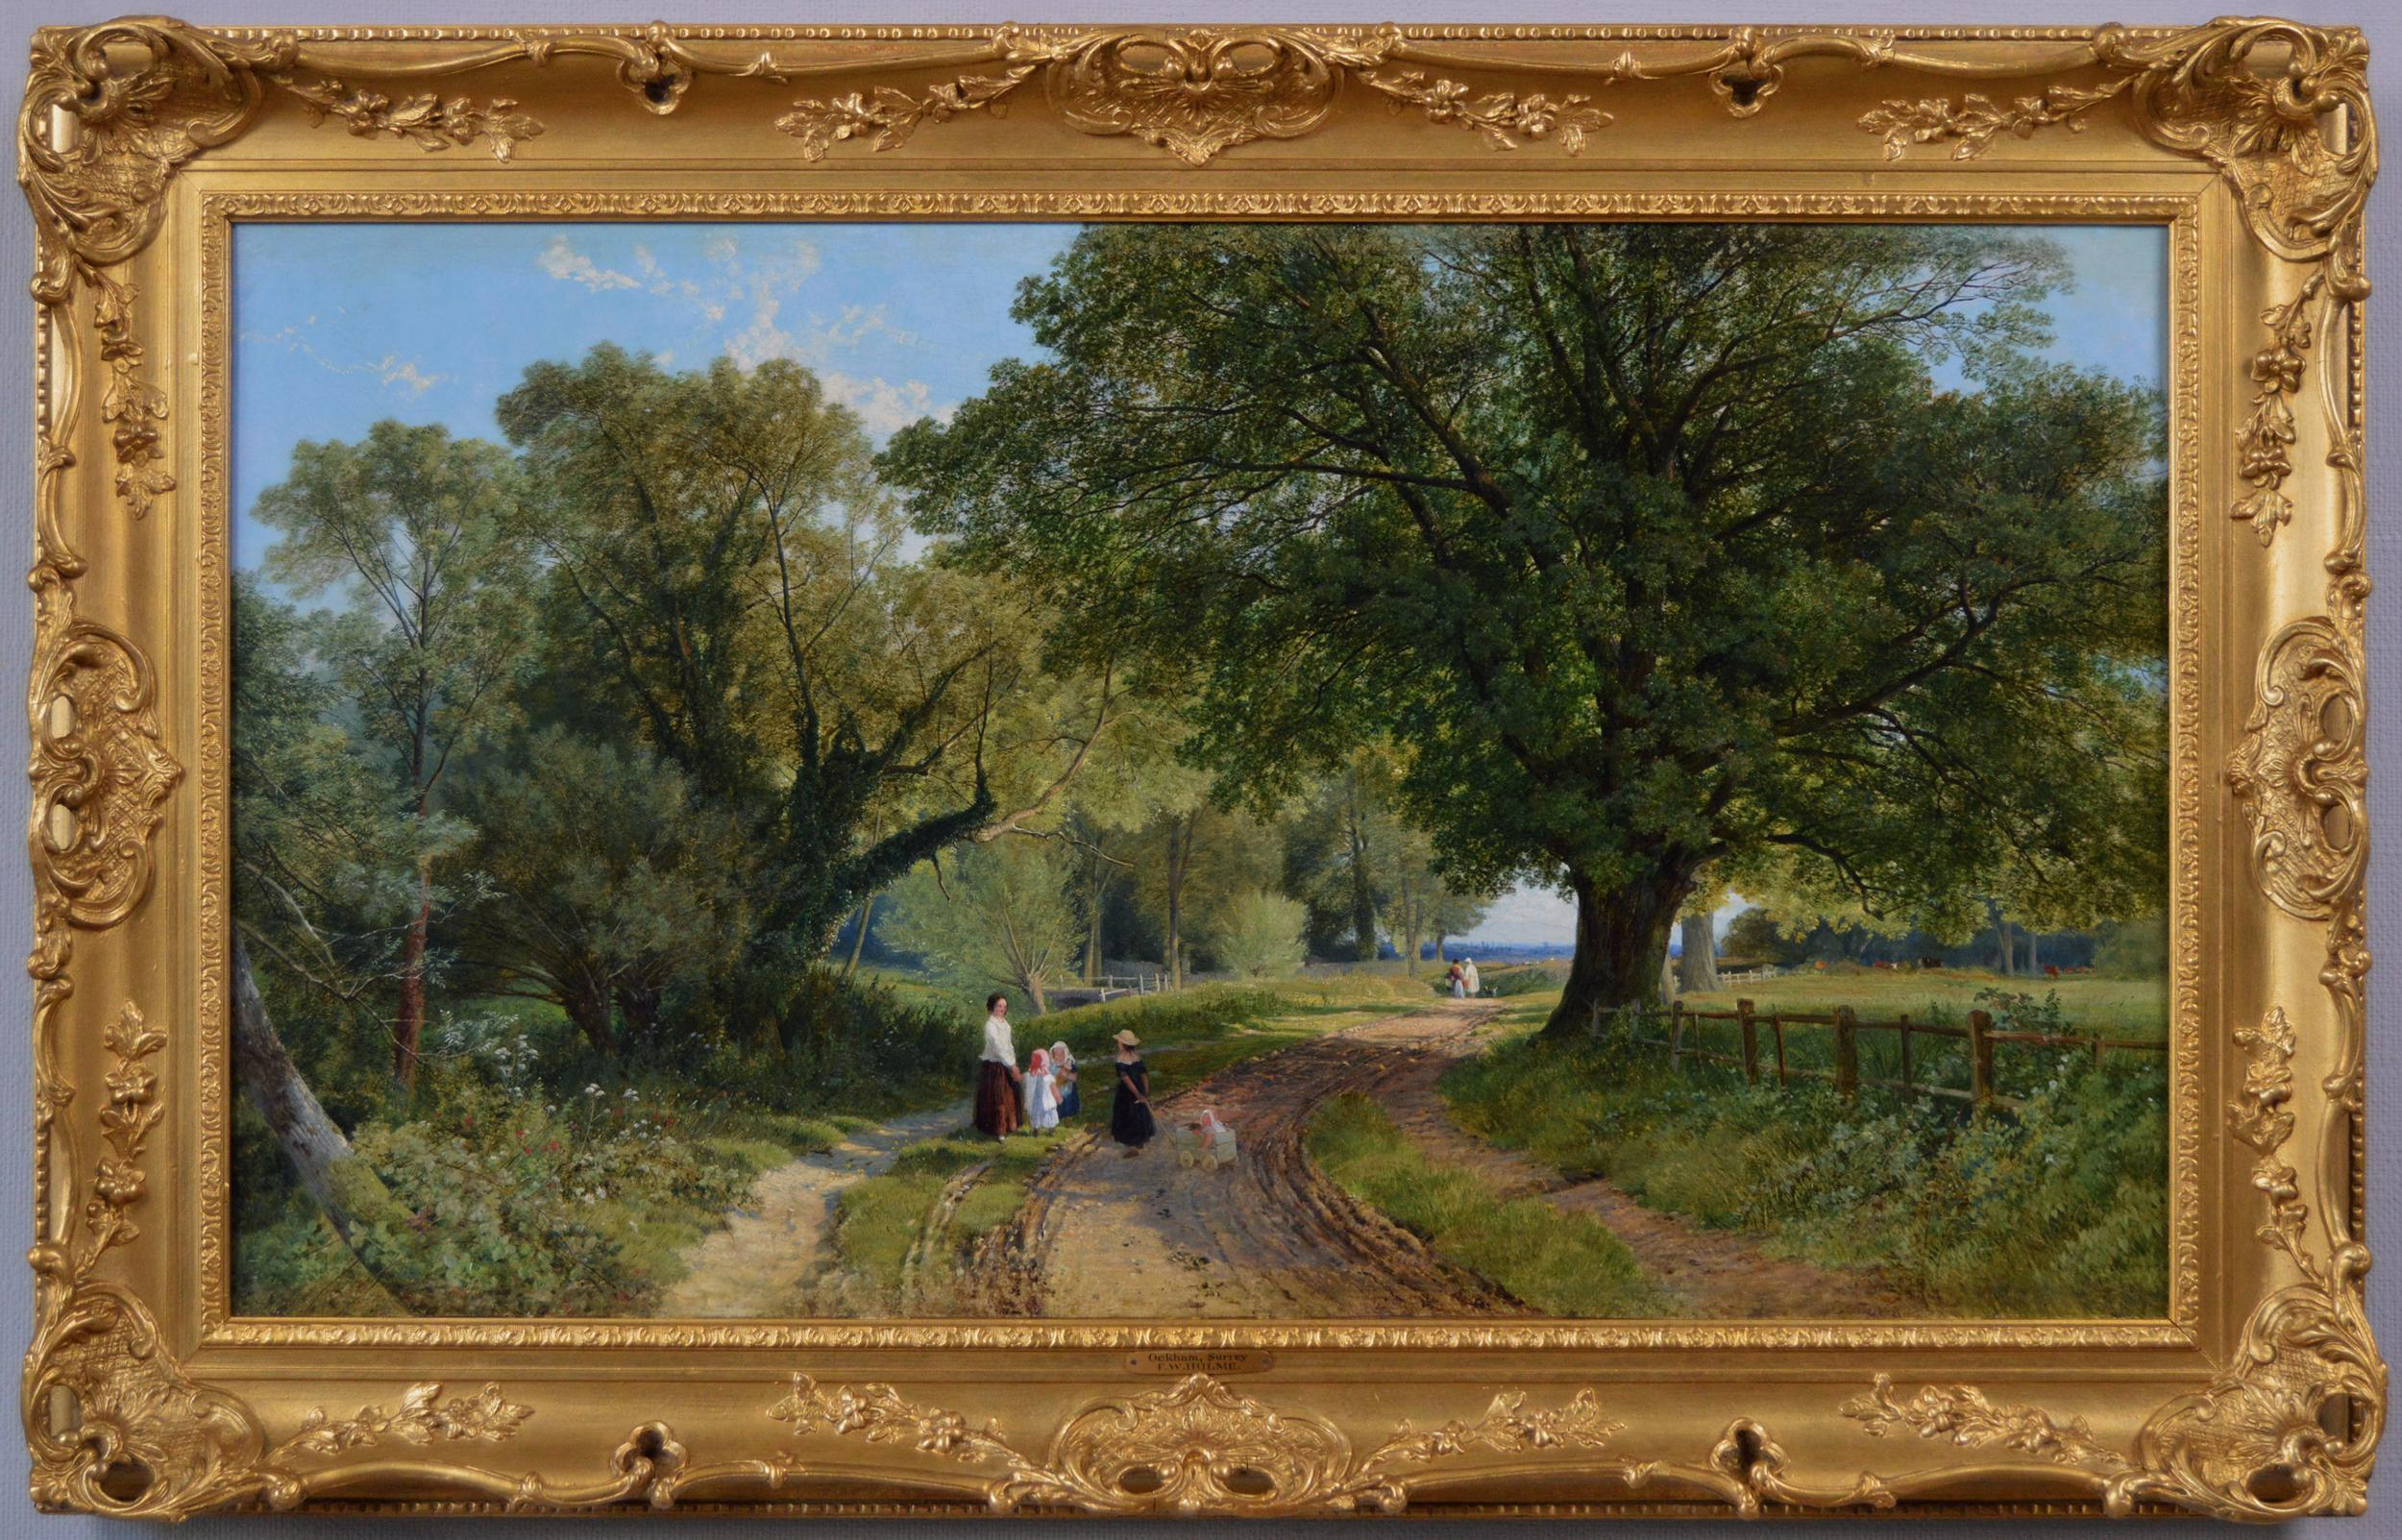 19th Century landscape oil painting of figures in a Surrey lane